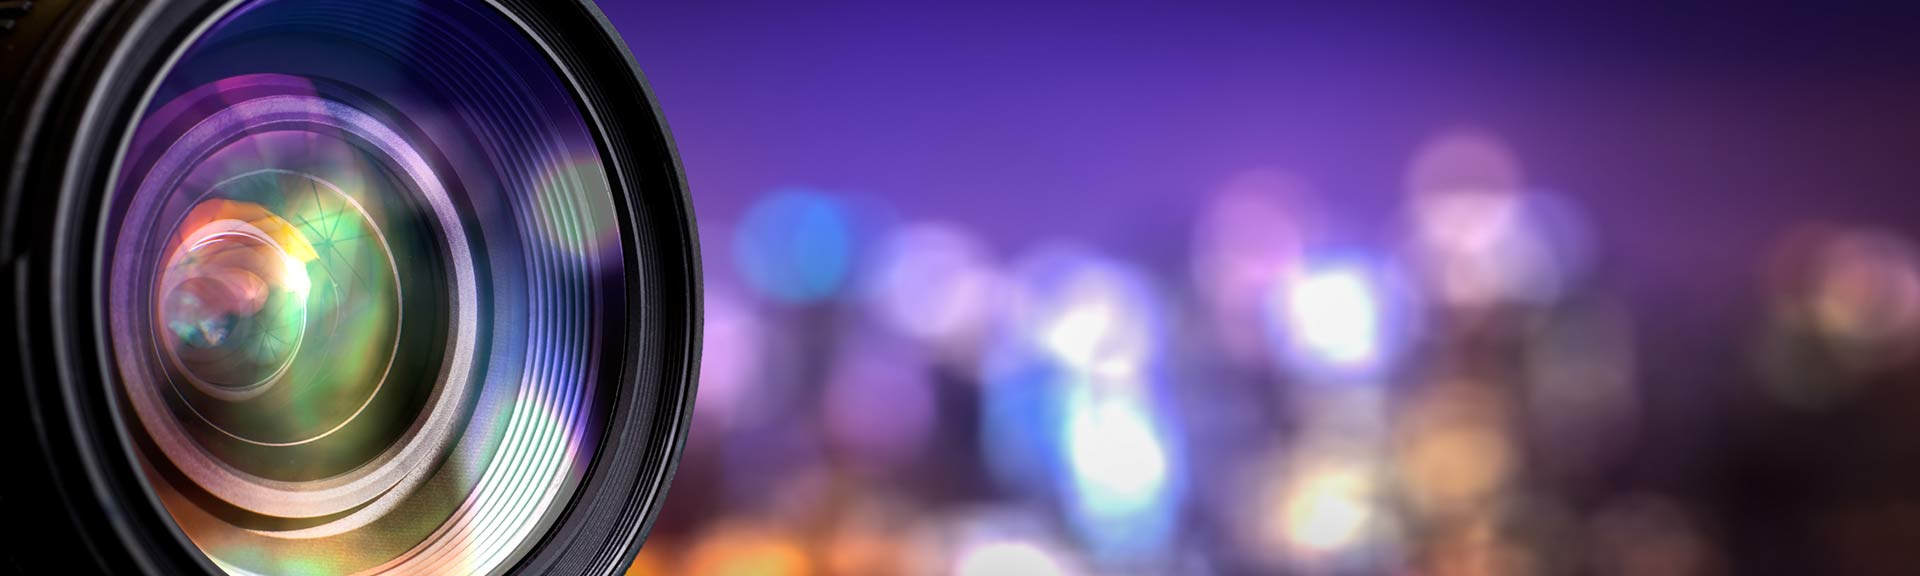 Video Lens with Purple Background